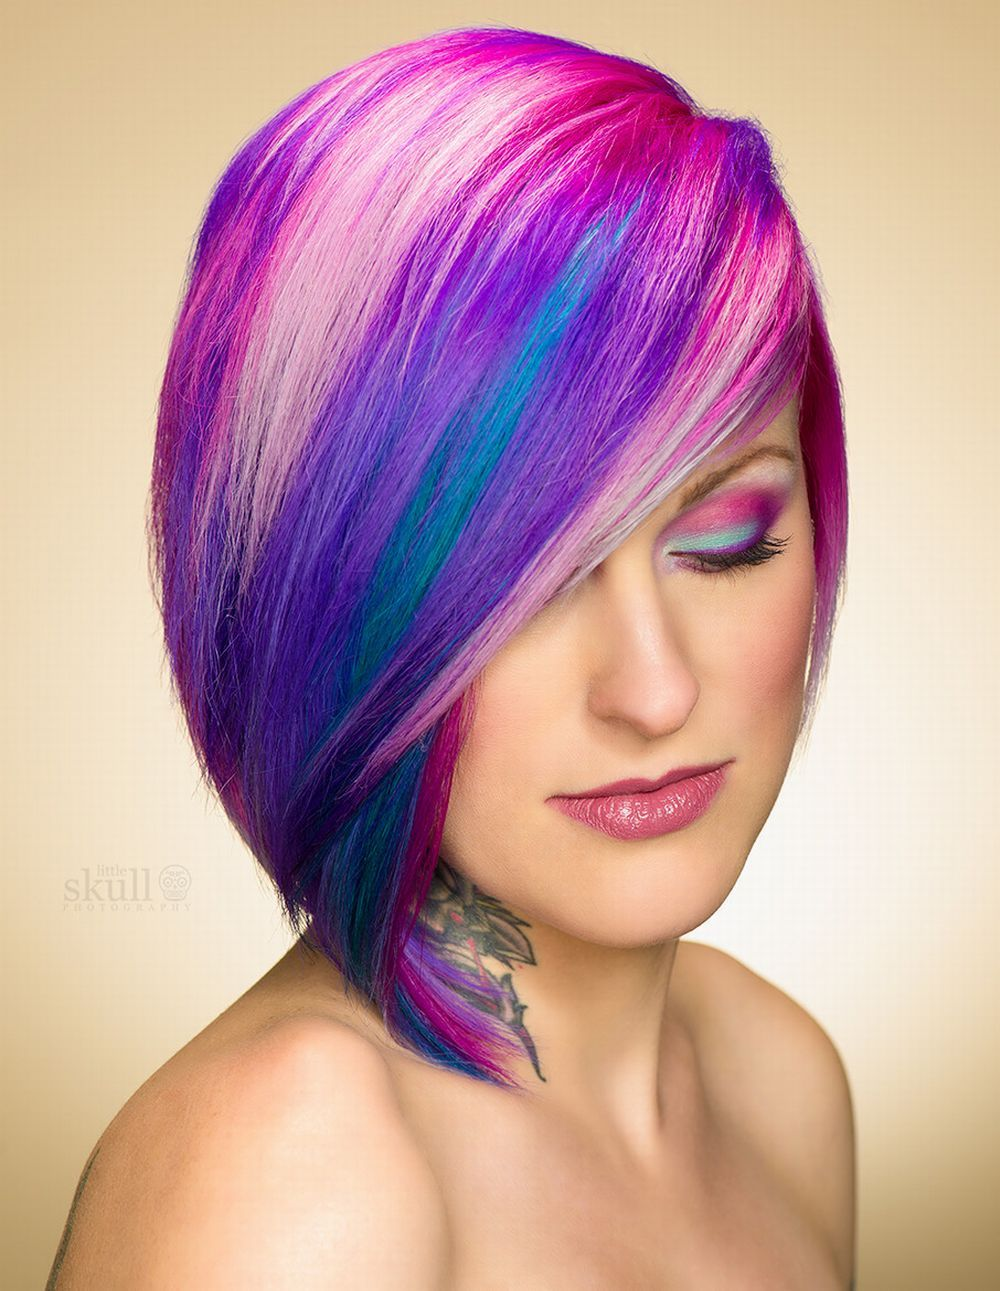 Hairstyles colors - Peinados de colores #hairstyles #trends ...